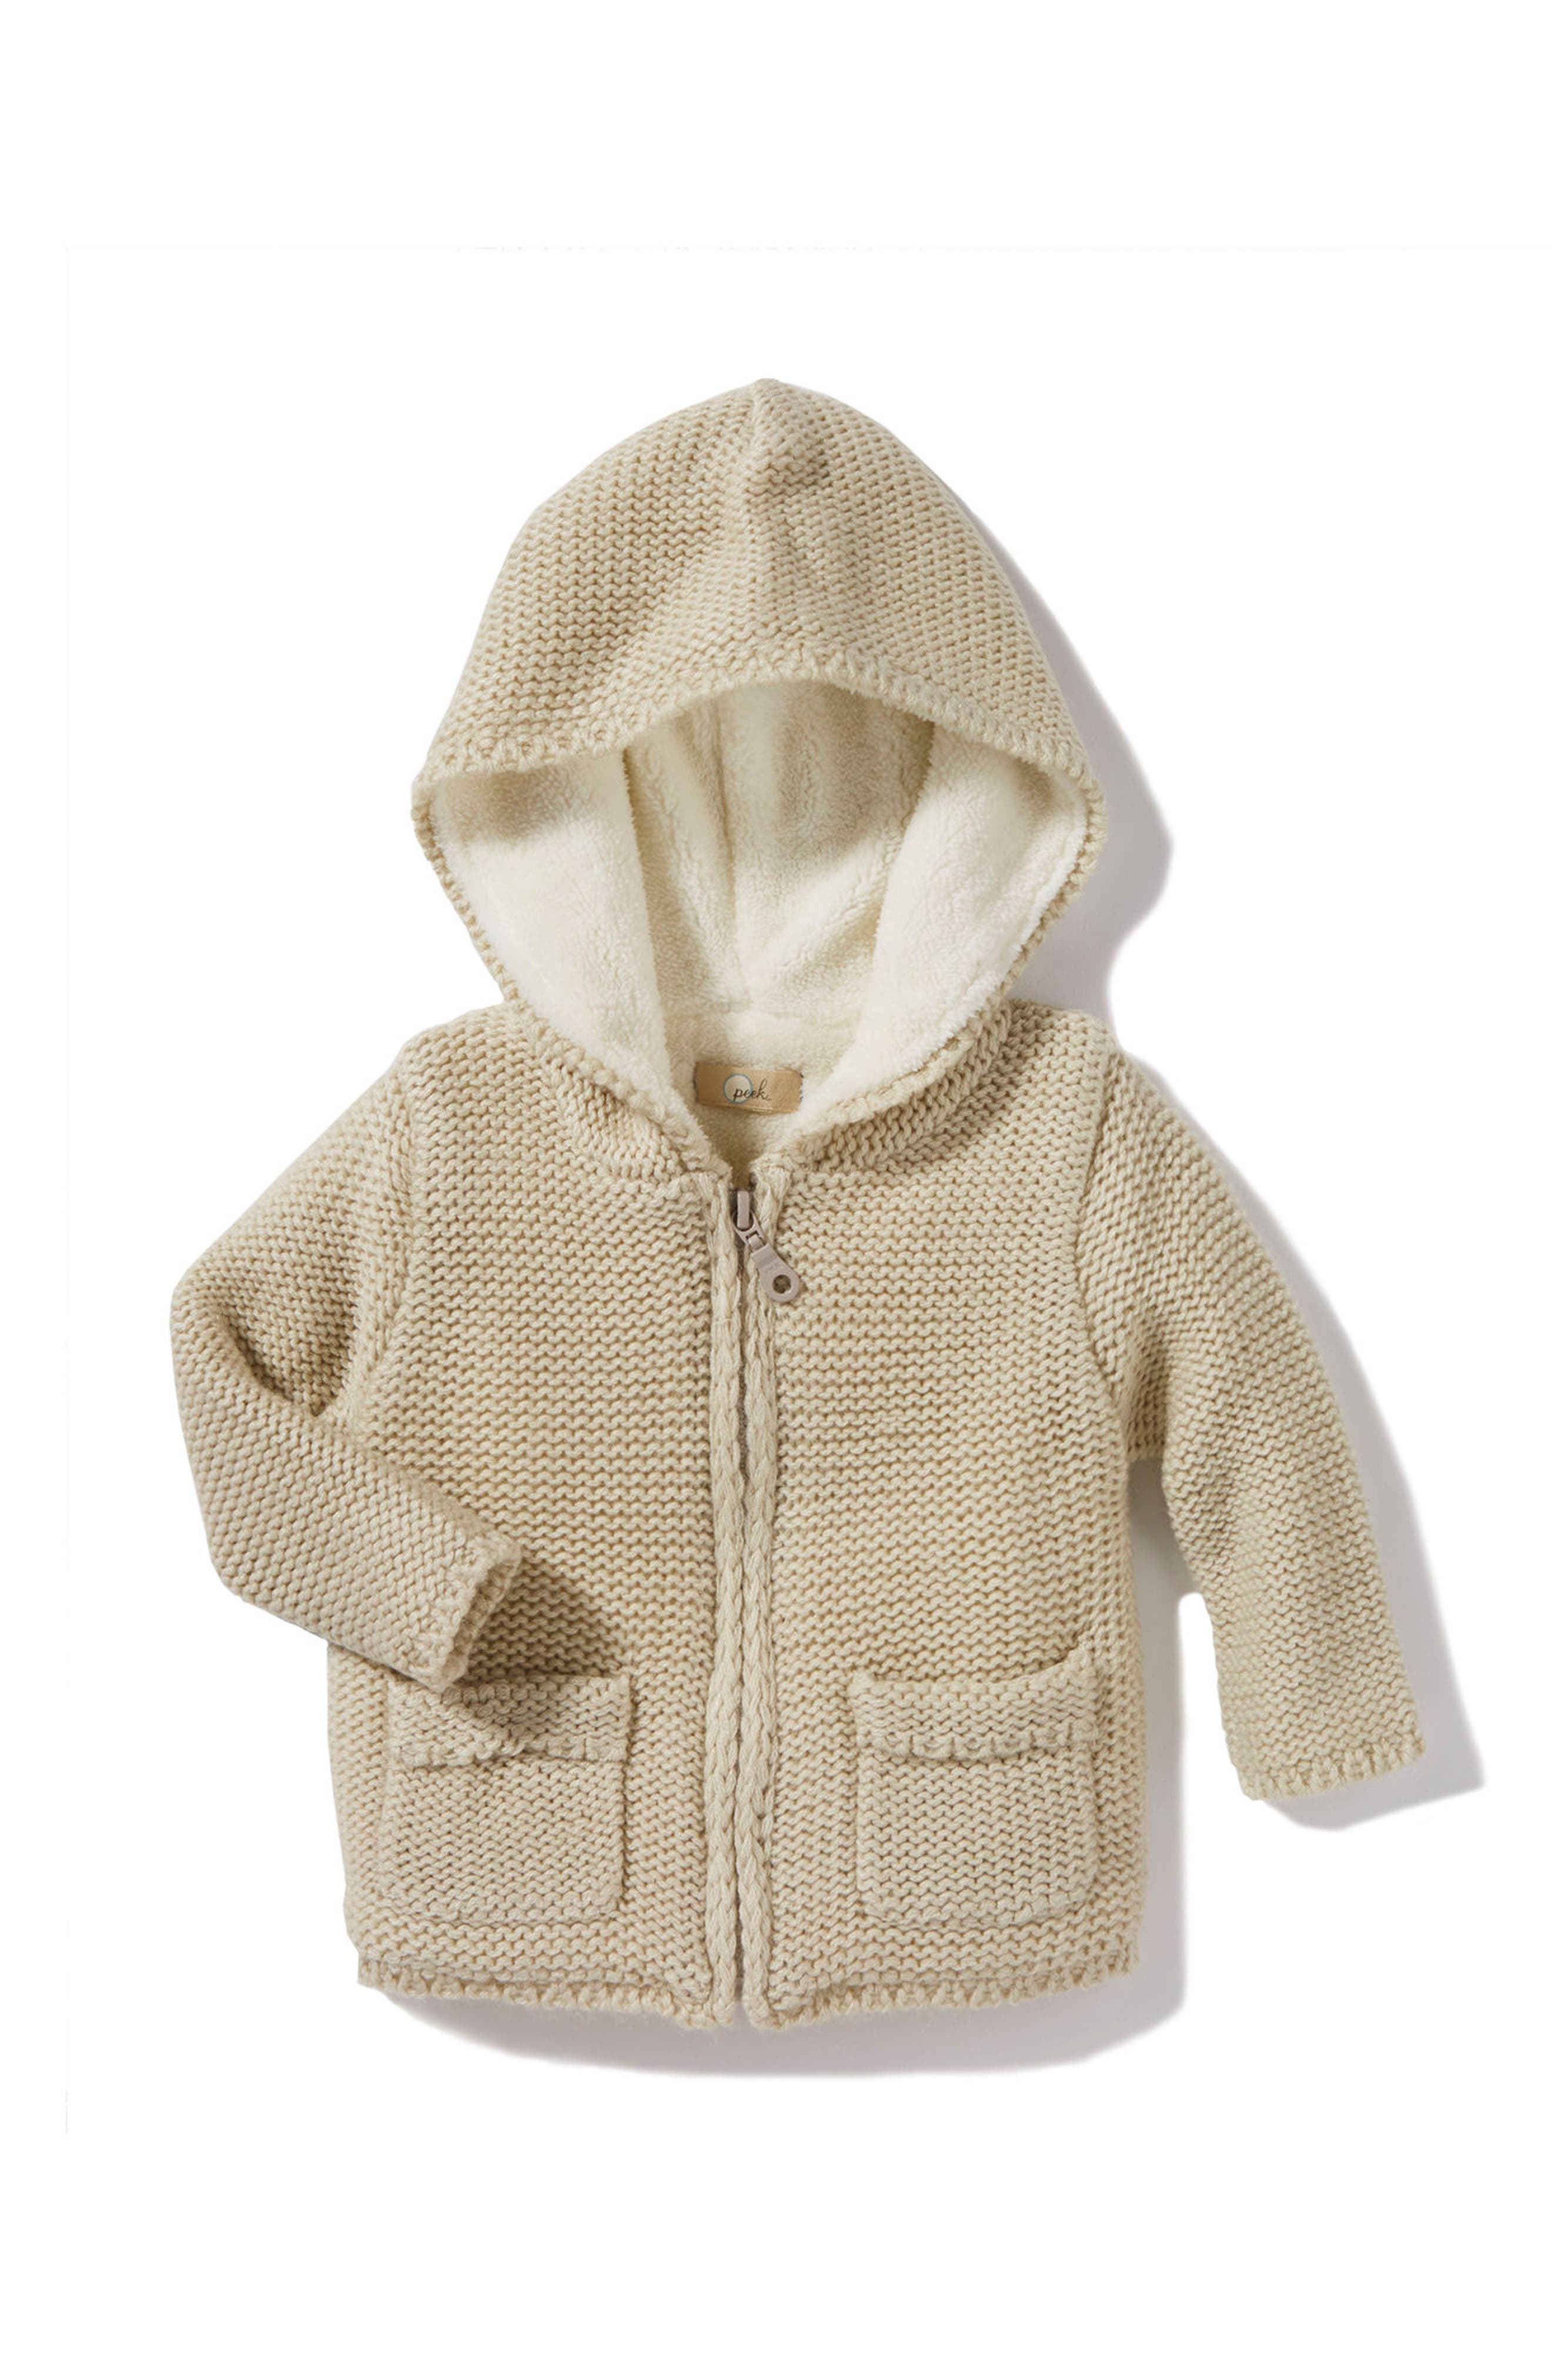 Peek Skyler Hooded Sweater,                         Main,                         color, Oatmeal